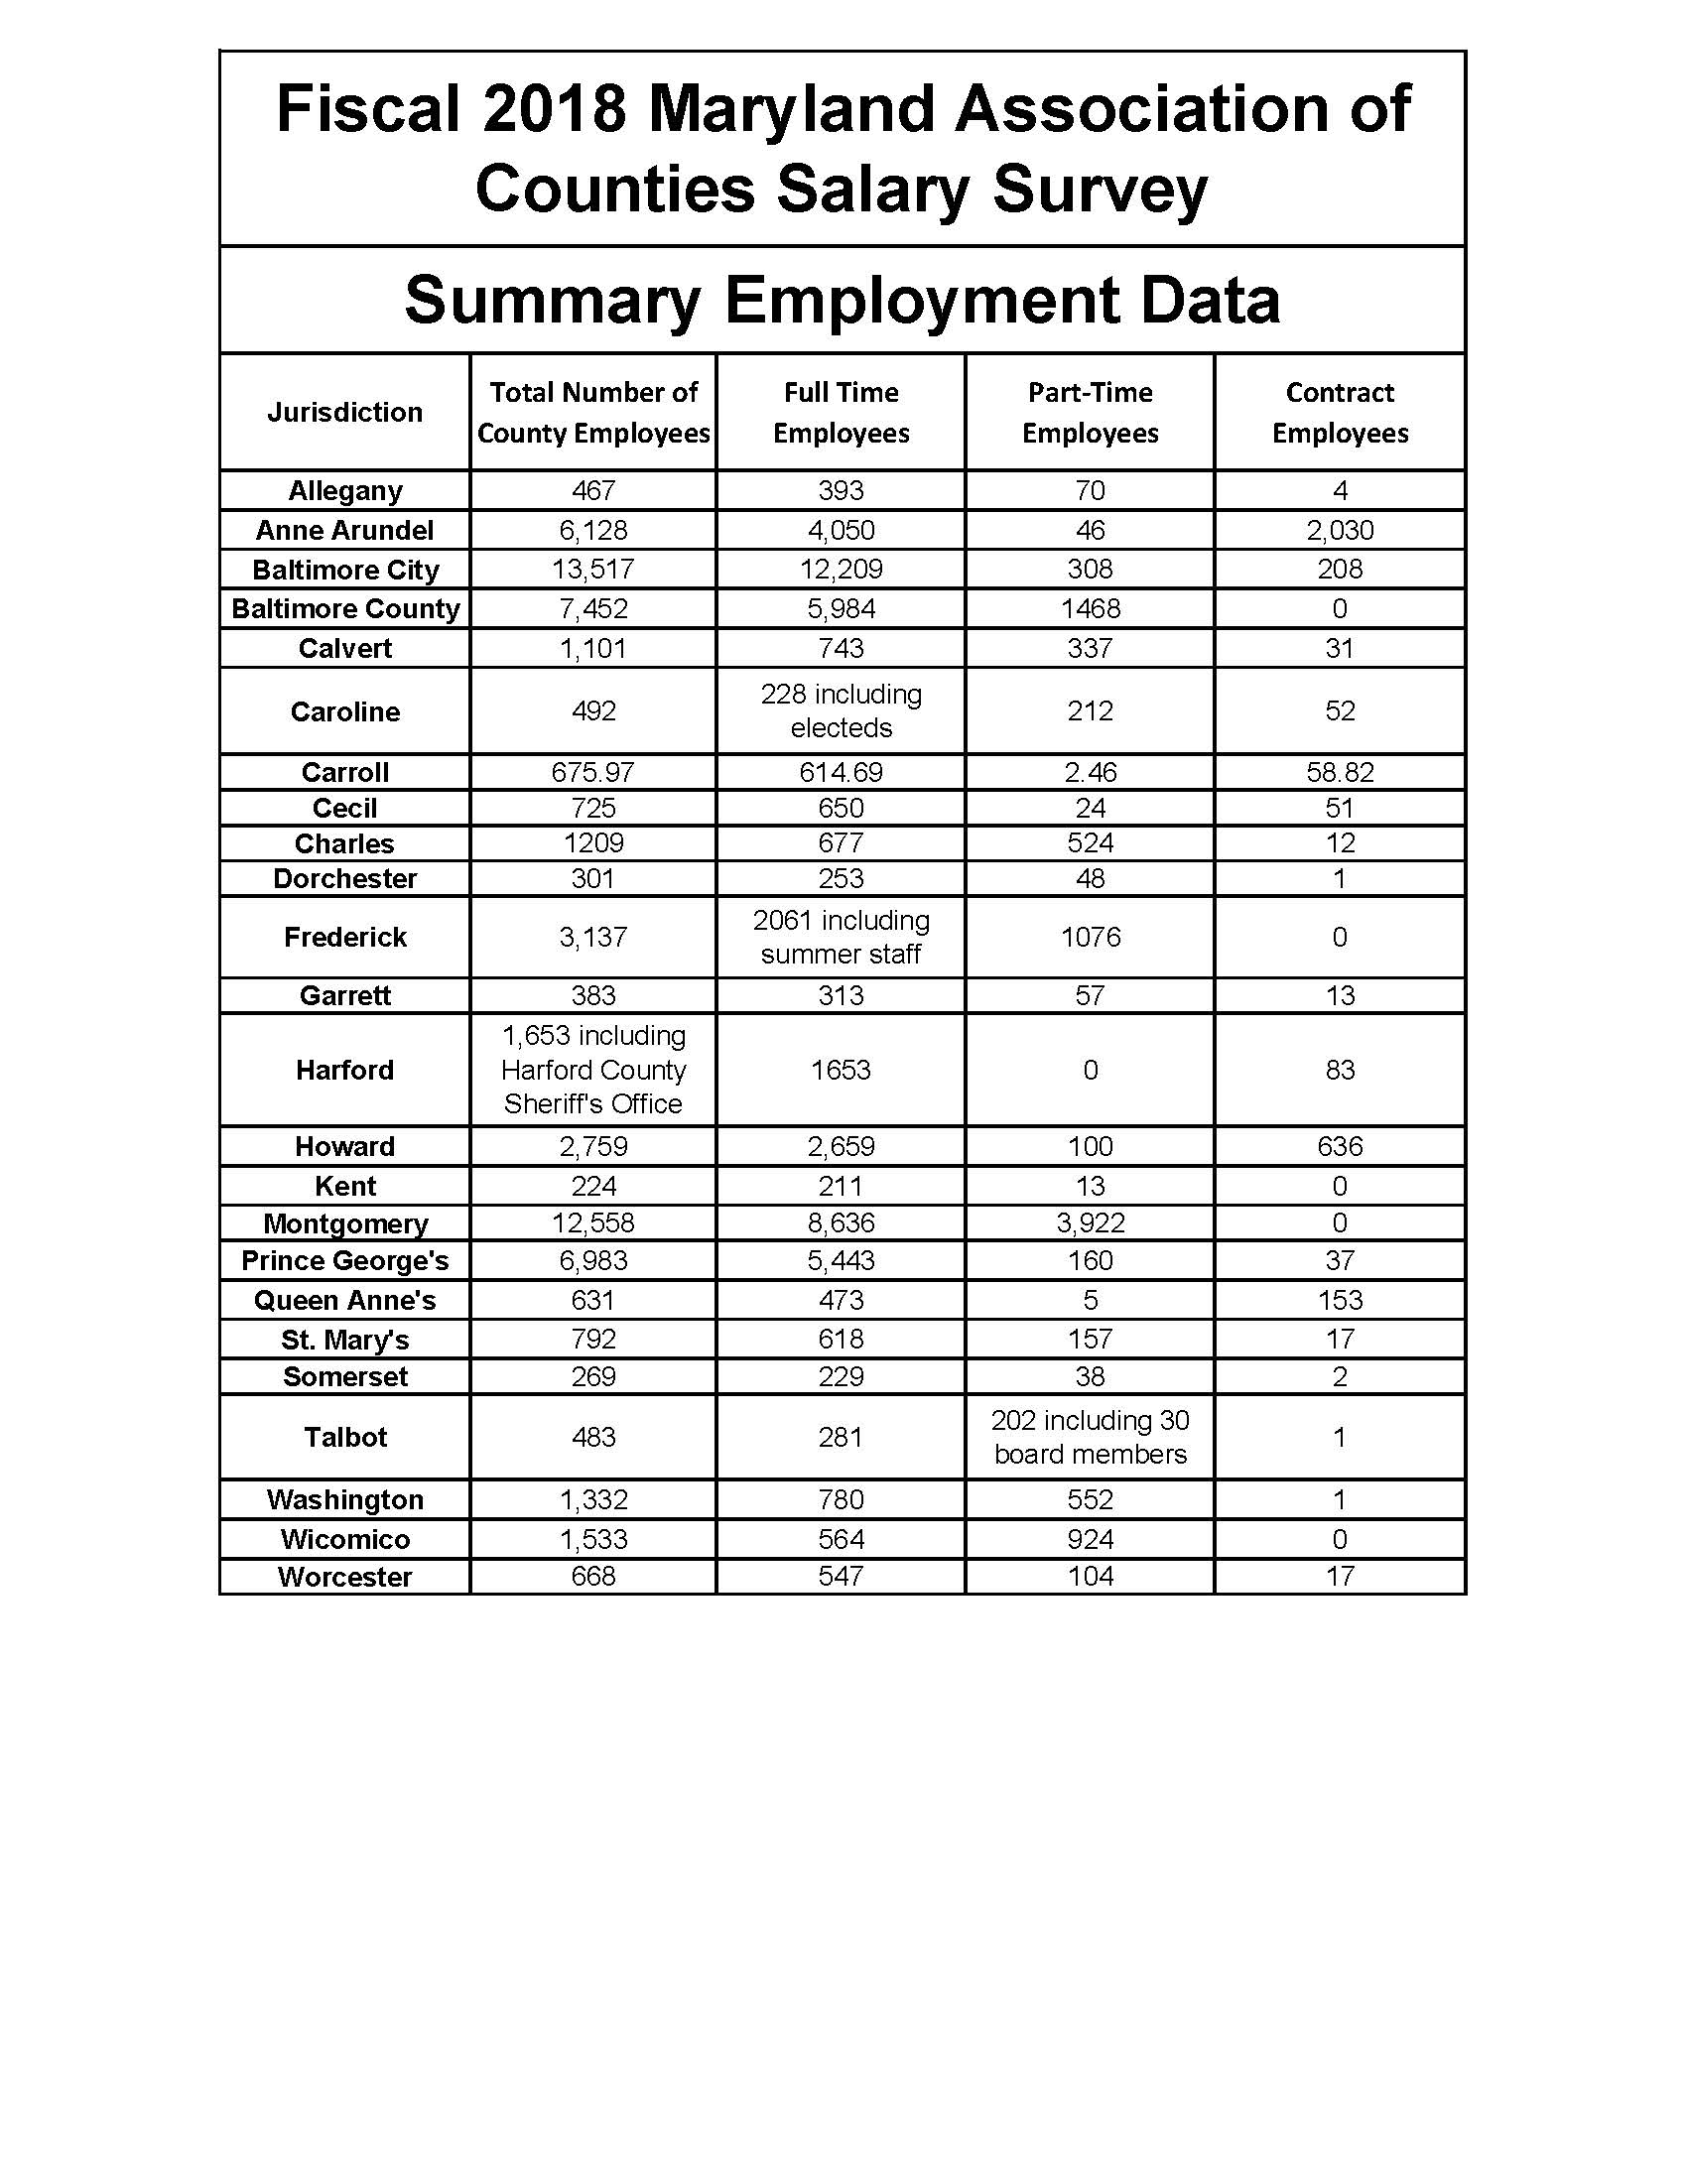 Fiscal 2018 Summary Employment Data from Maryland's ...